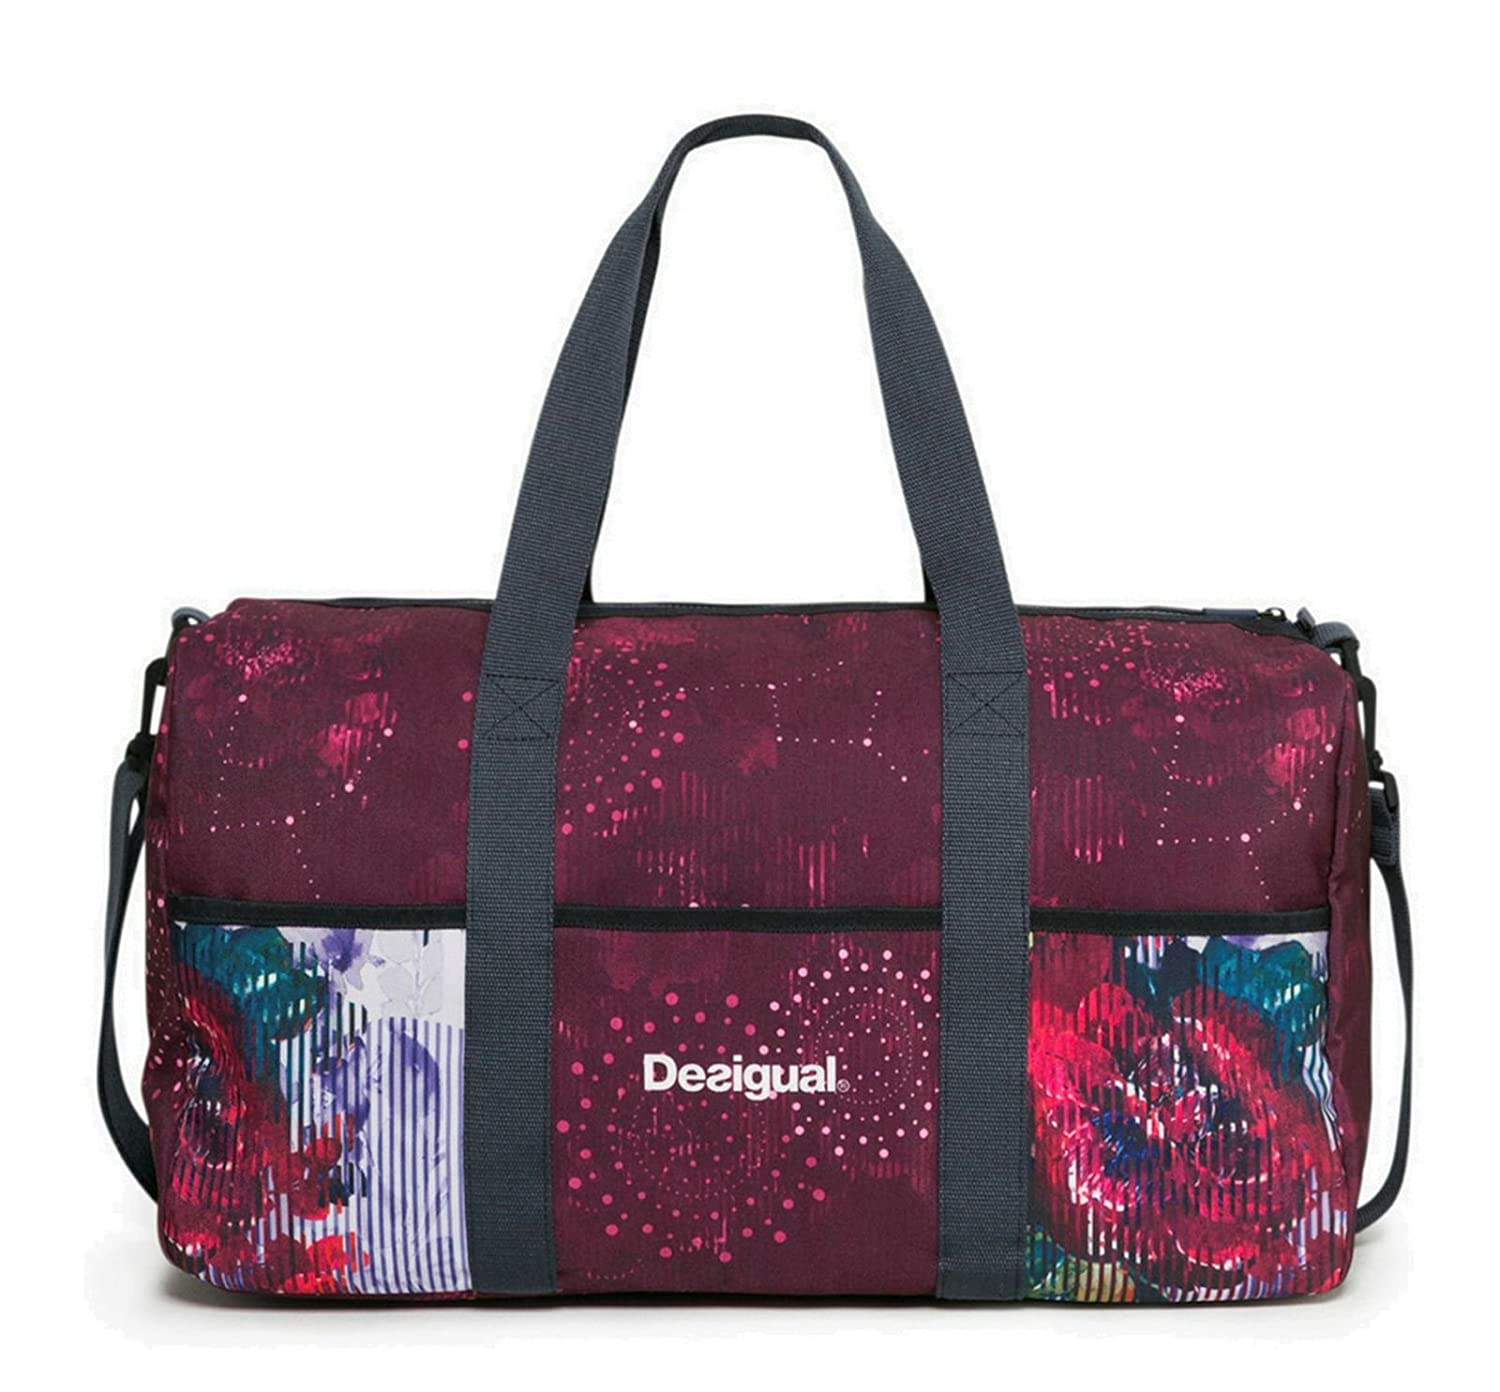 Desigual Sac 17WXRW25 Bols Gym Bag Night Garden 3037 Rojo AB 100776